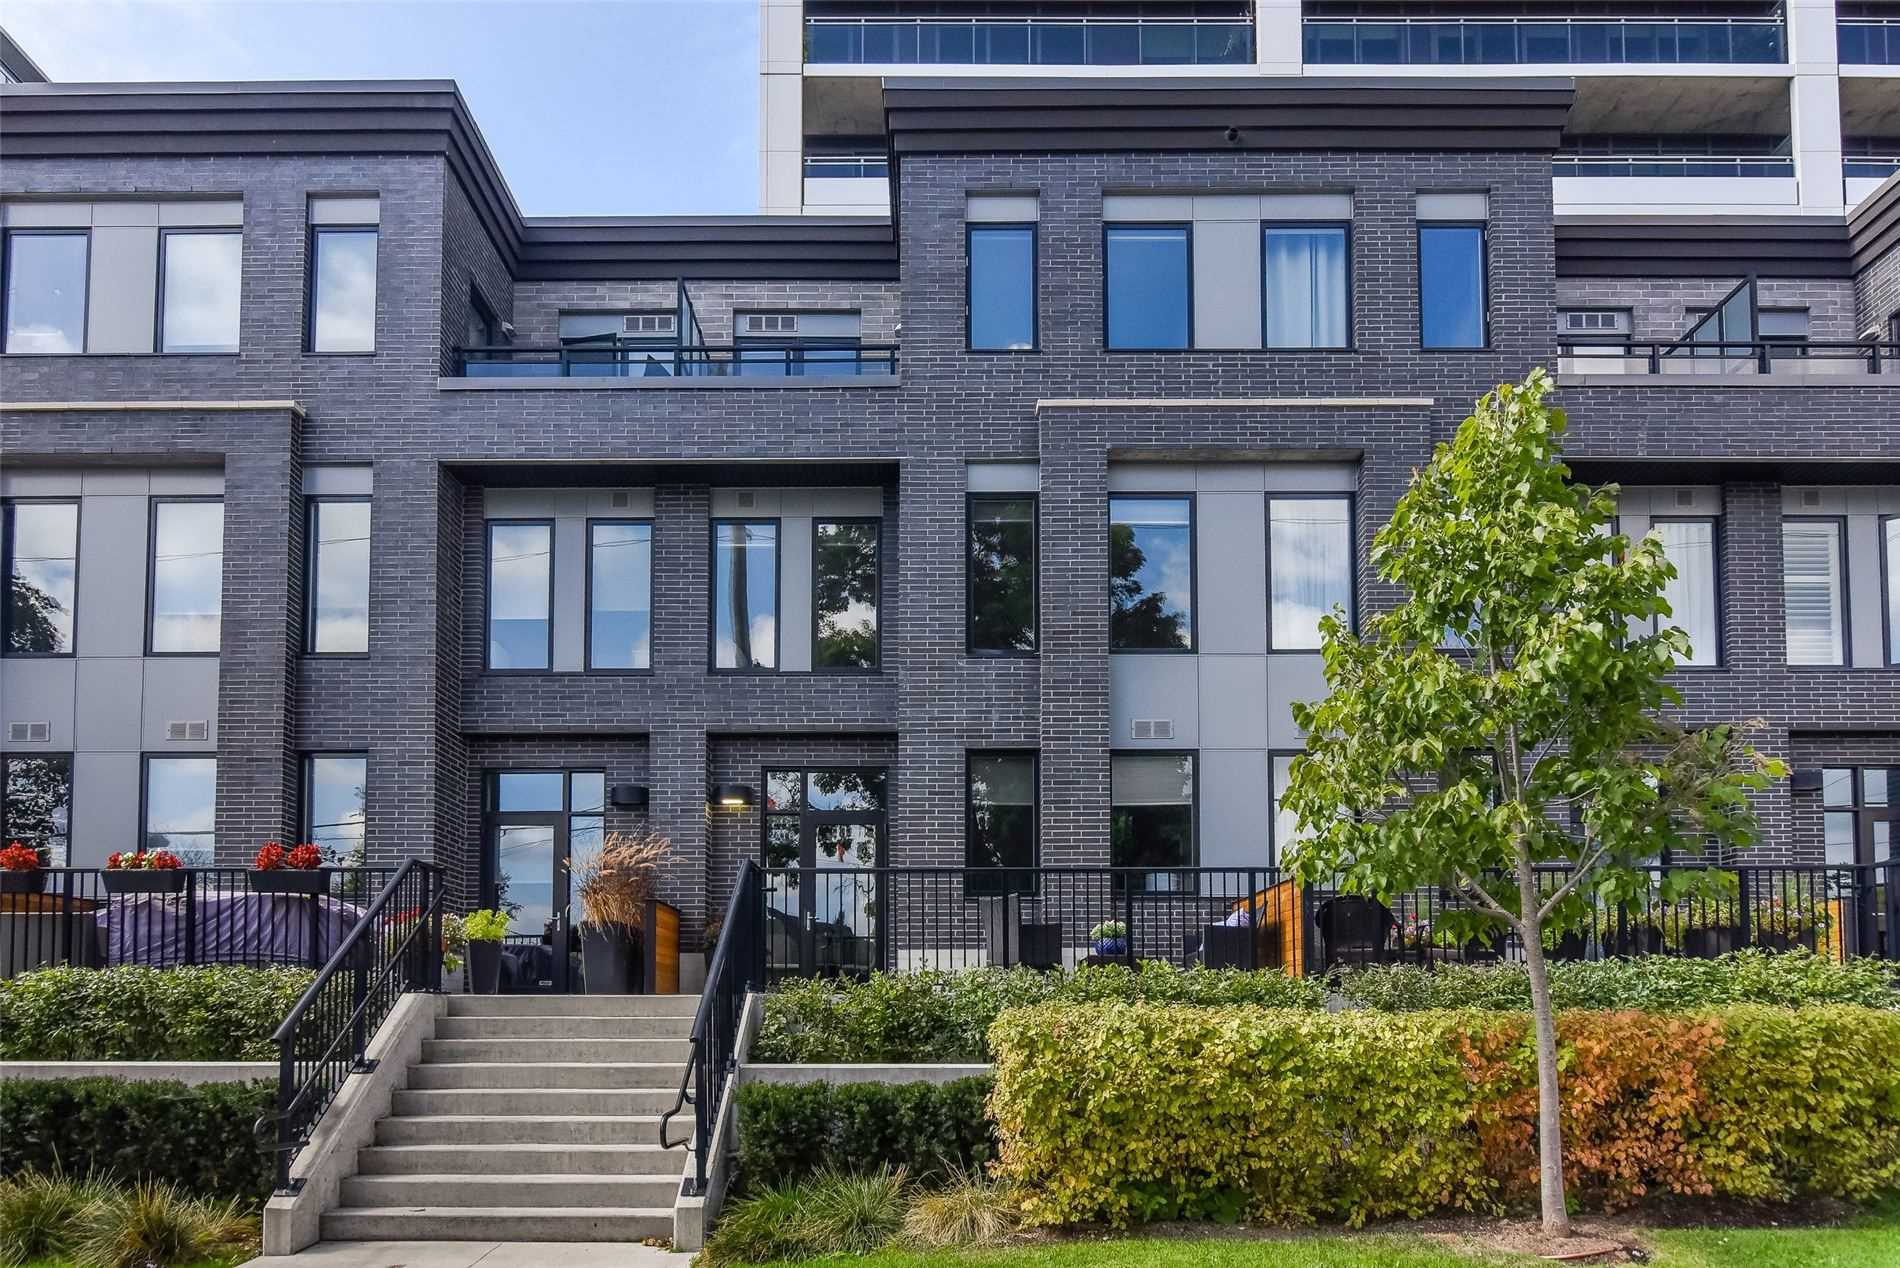 For Sale: 6 - 53 Arthur Street South, Guelph, ON   3 Bed, 3 Bath Townhouse for $599999.00. See 20 photos!